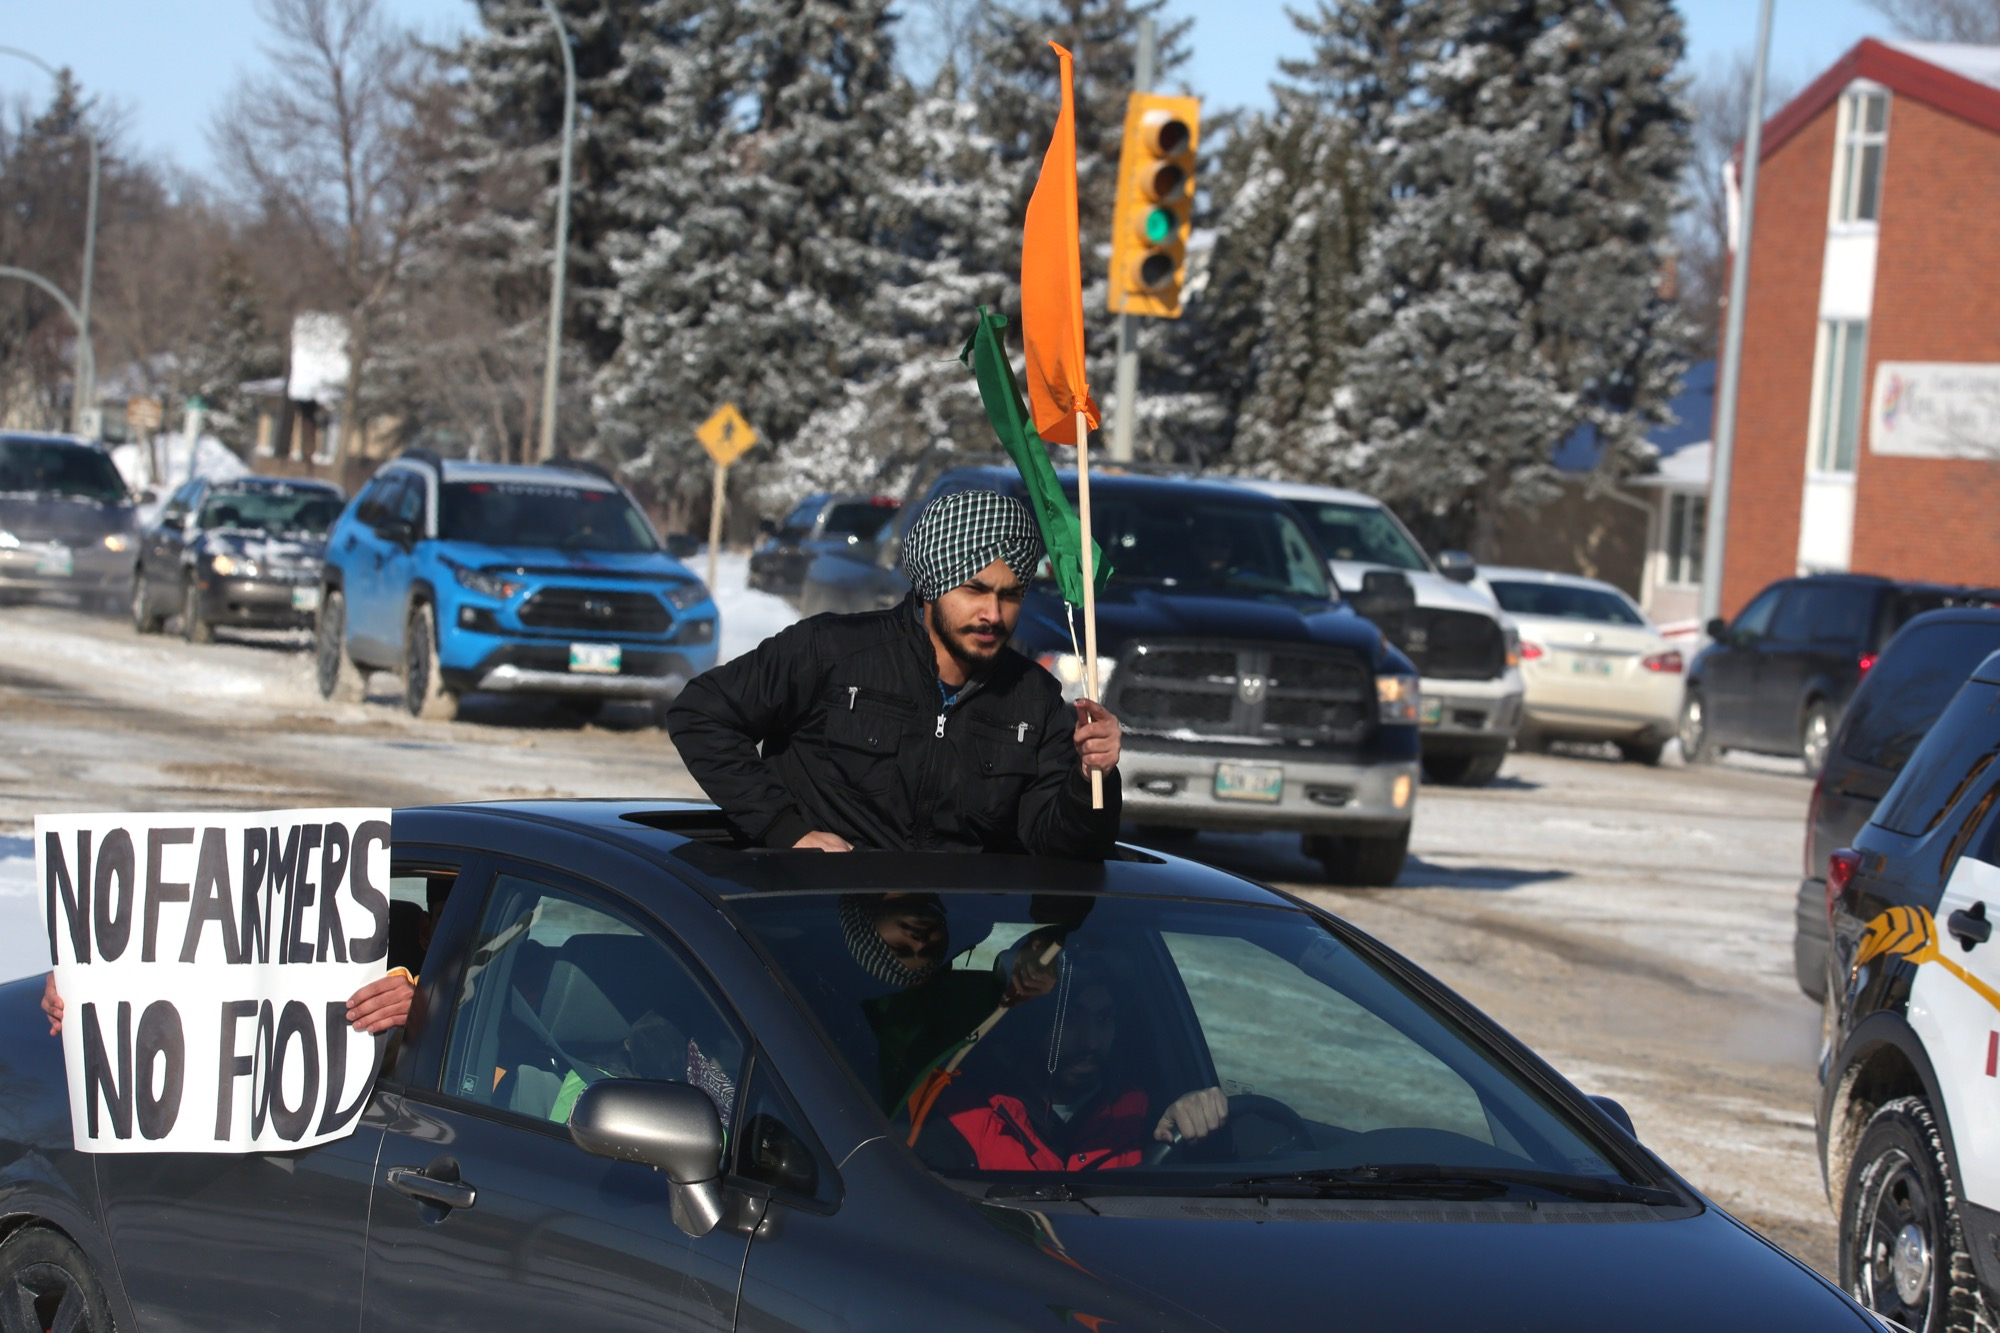 Participants of Saturday's rally in support of India's farmers hold signs and flags out of a vehicle while making their way down 18th Street in Brandon.